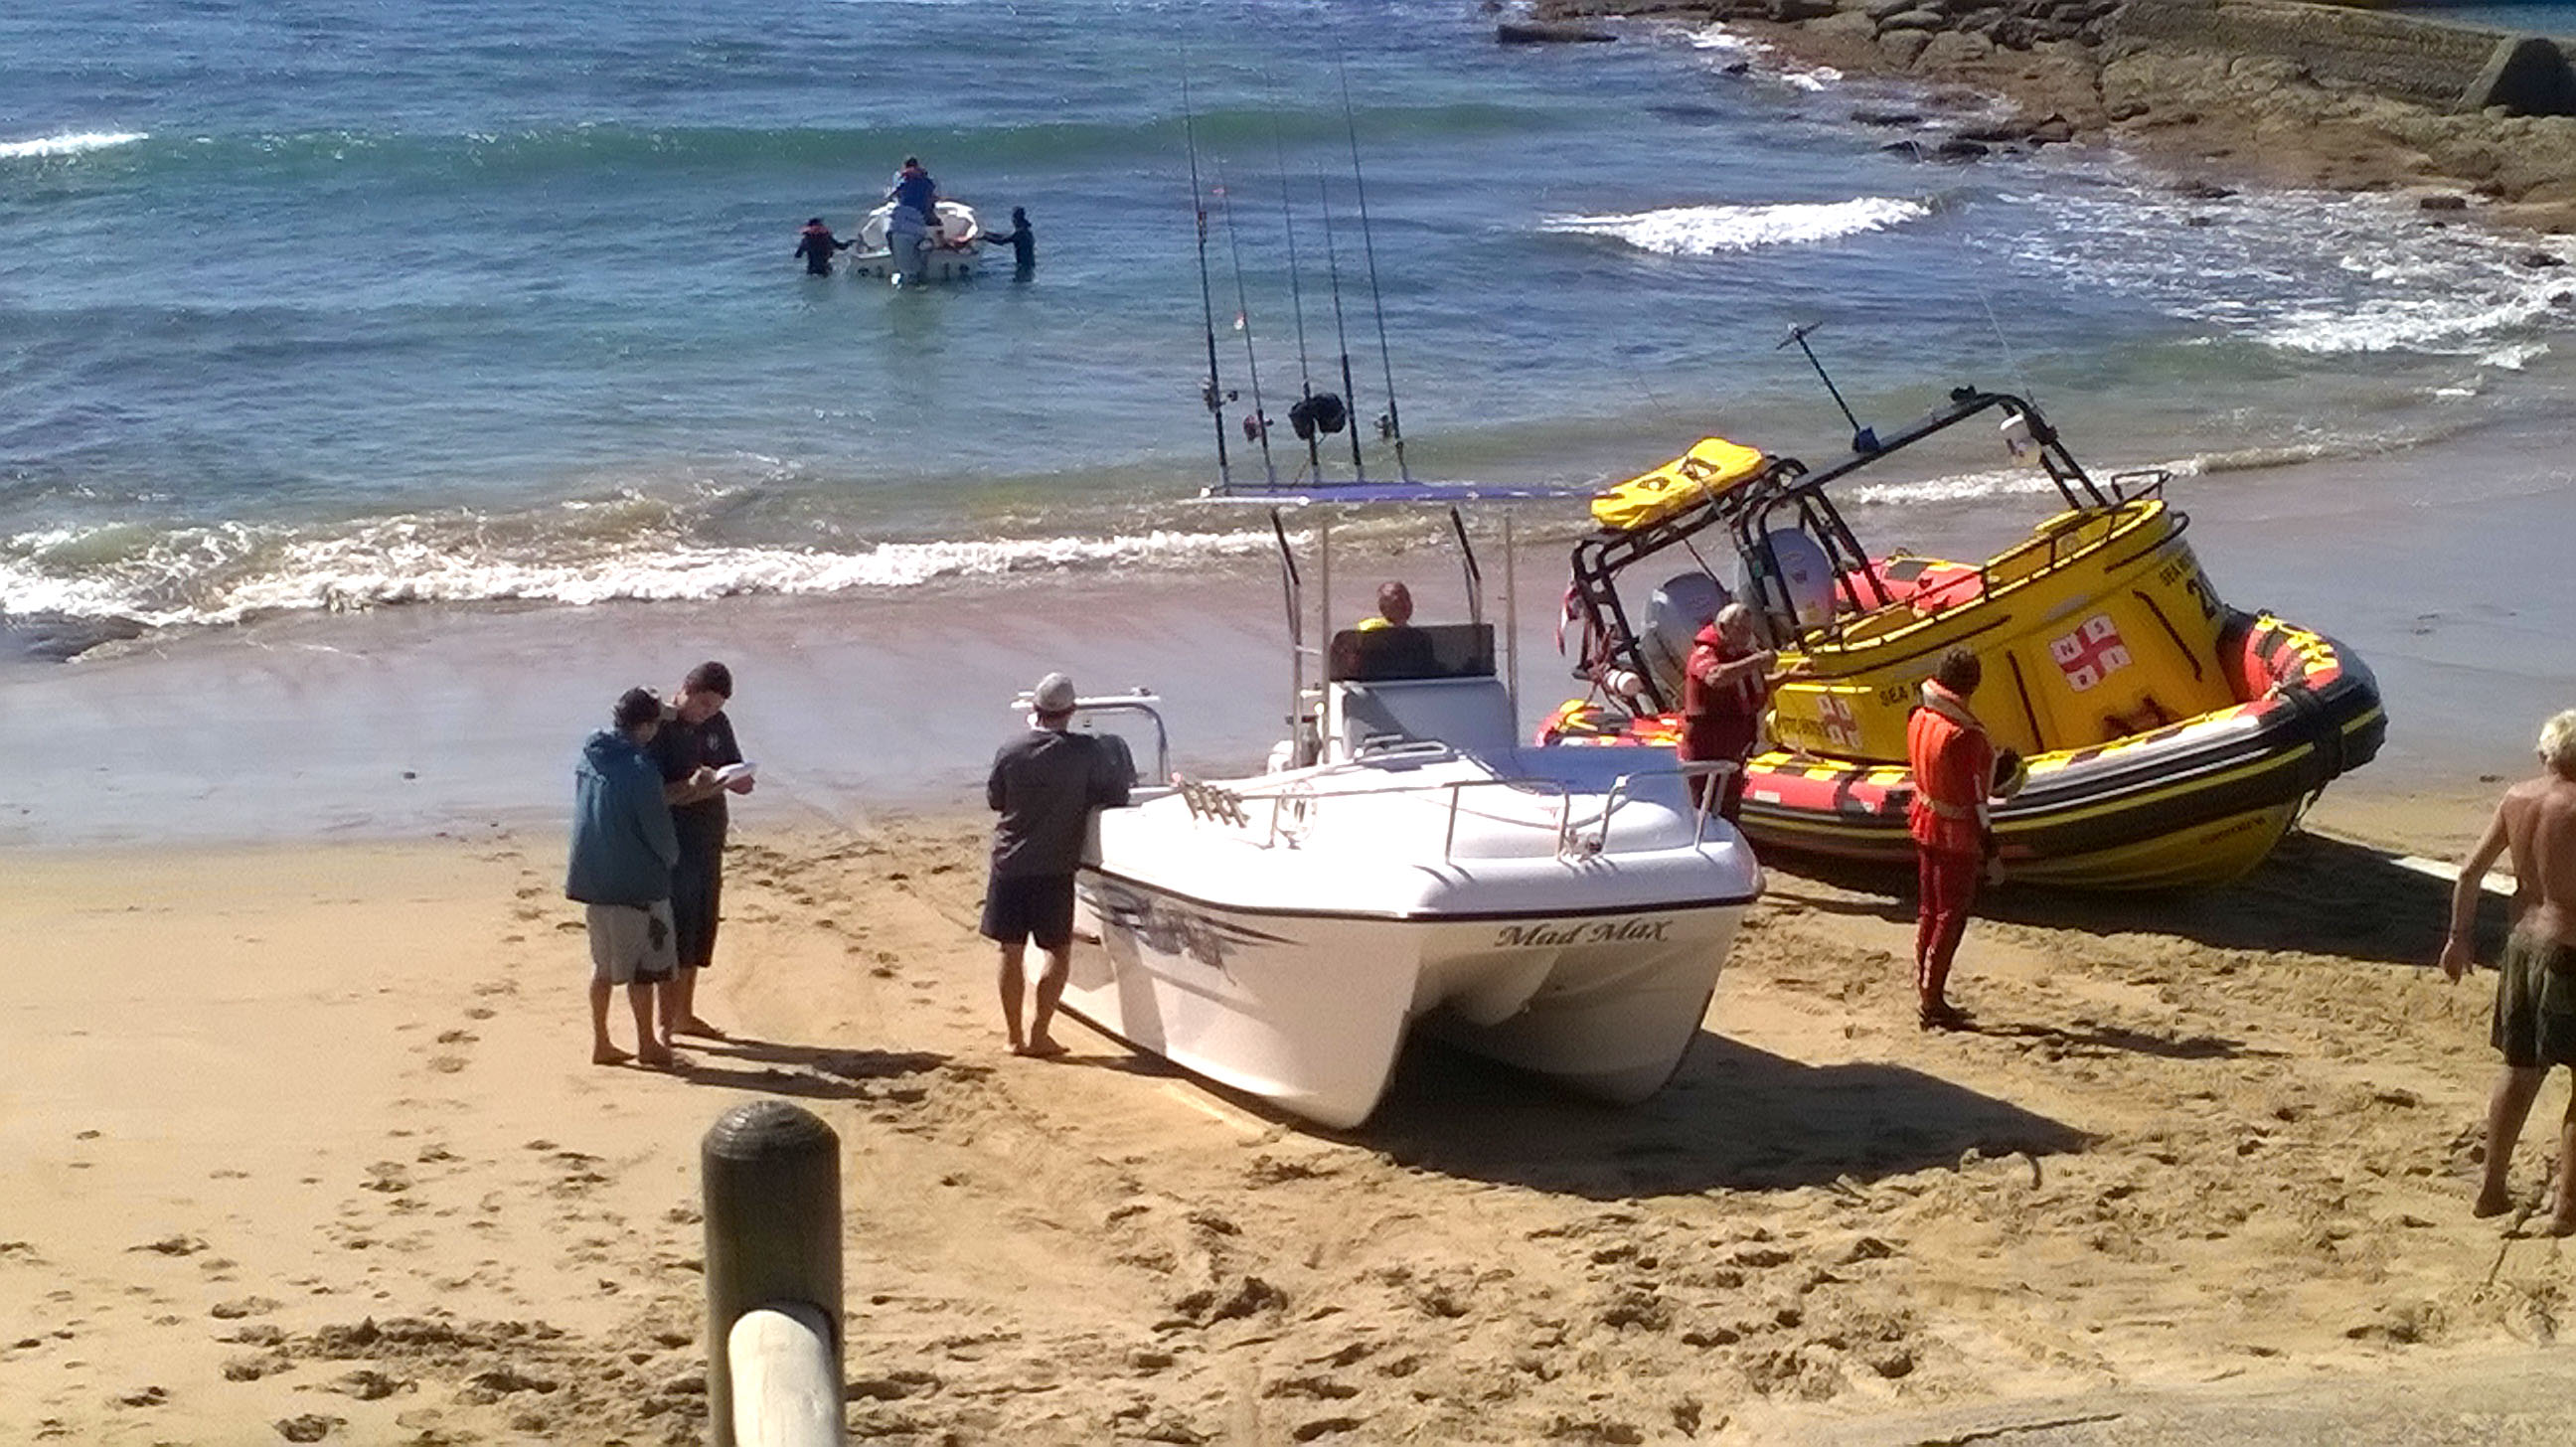 All safe on shore